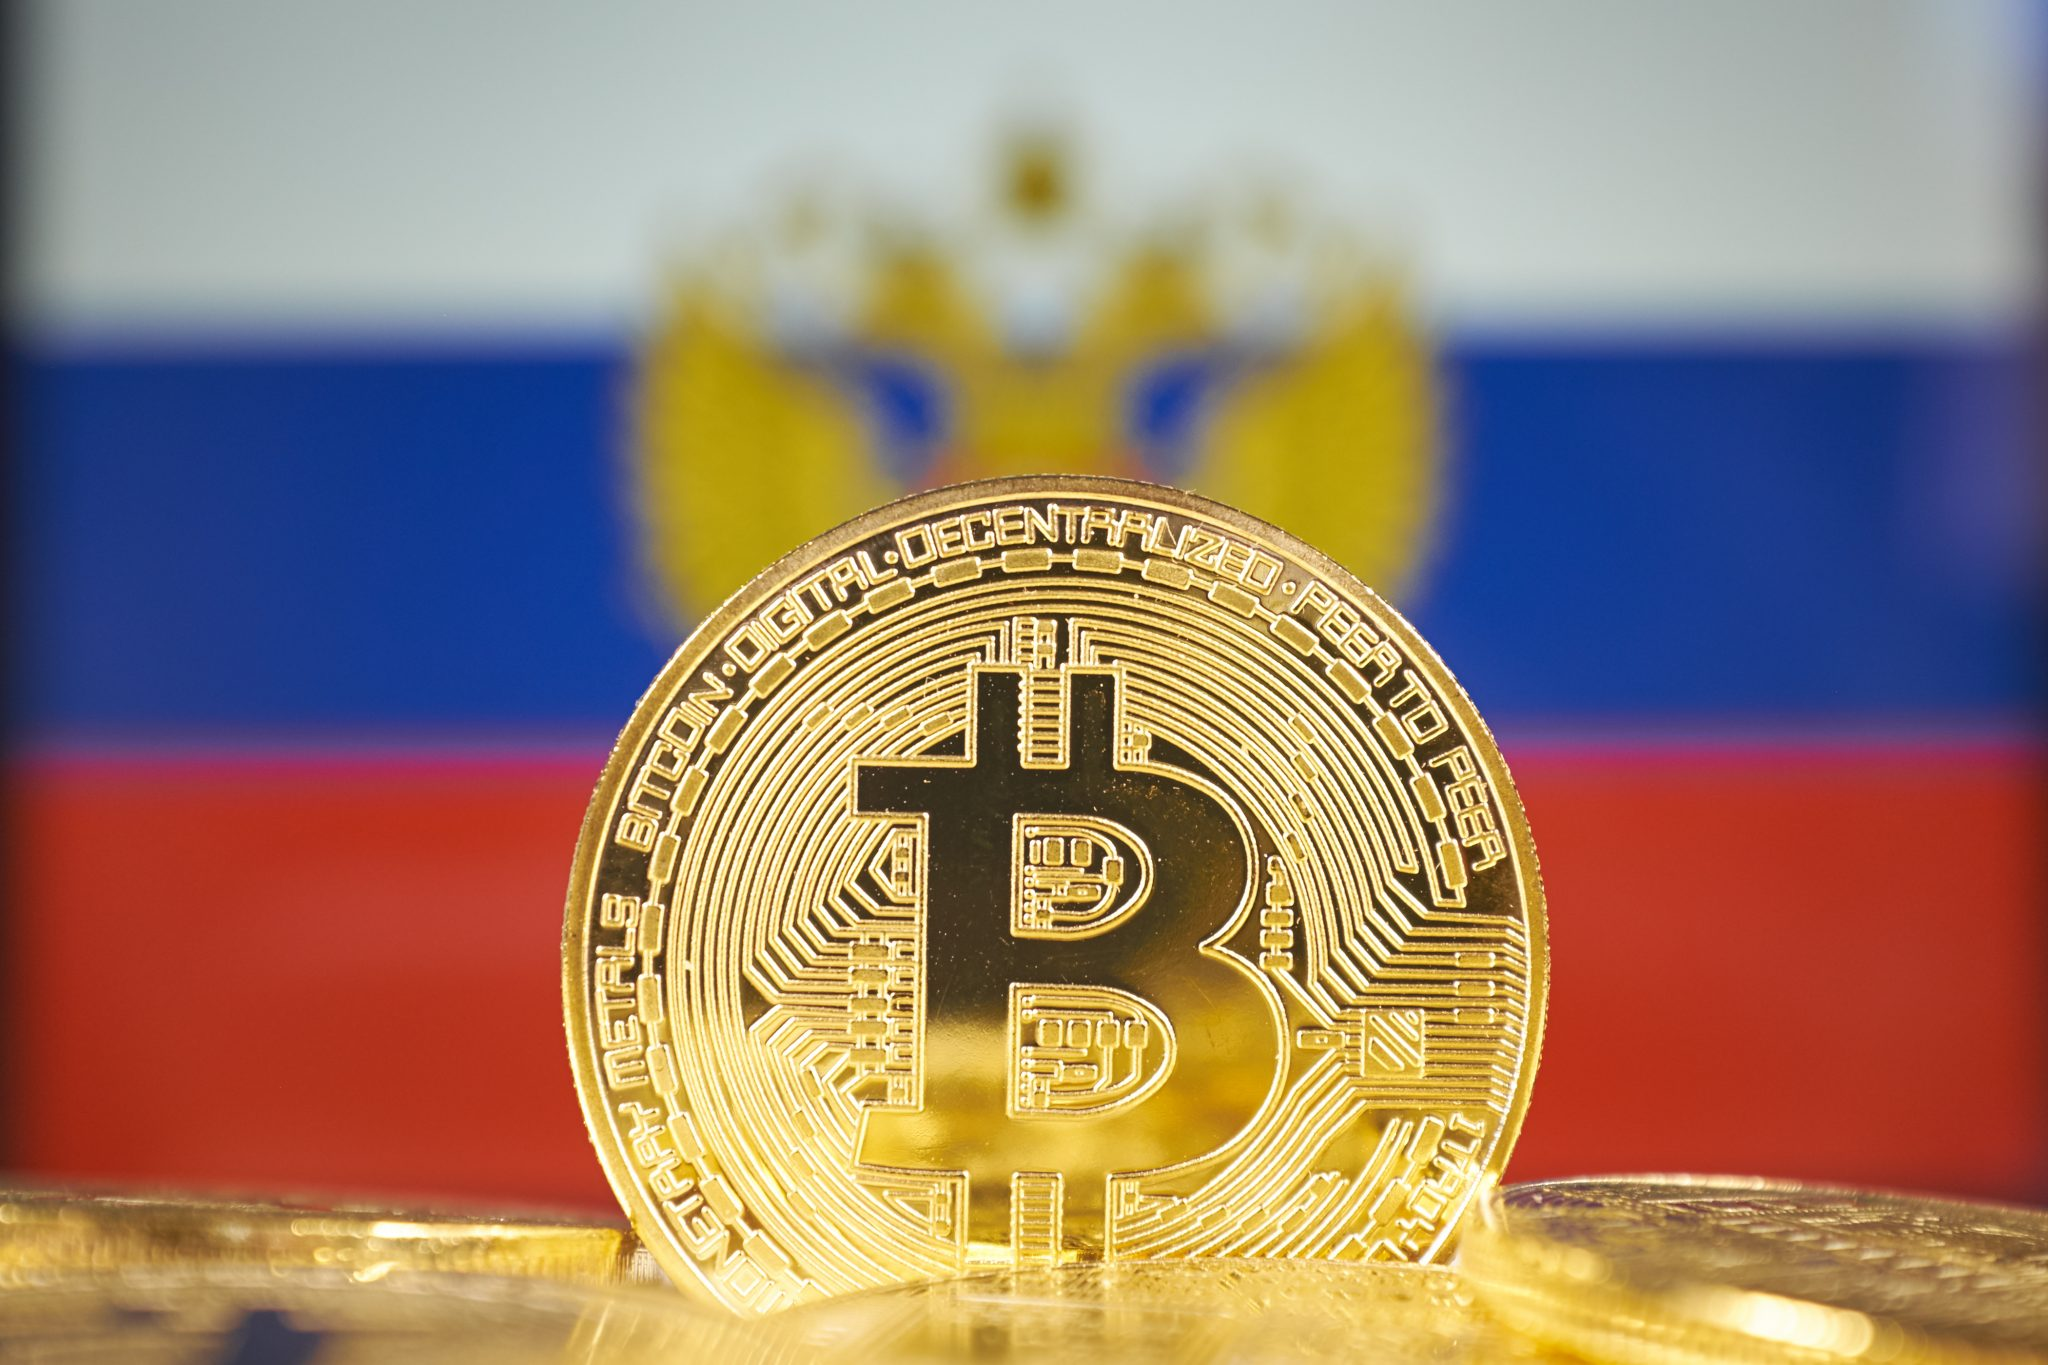 Bitcoin (new virtual money) and Russia Flag. Conceptual image for investors